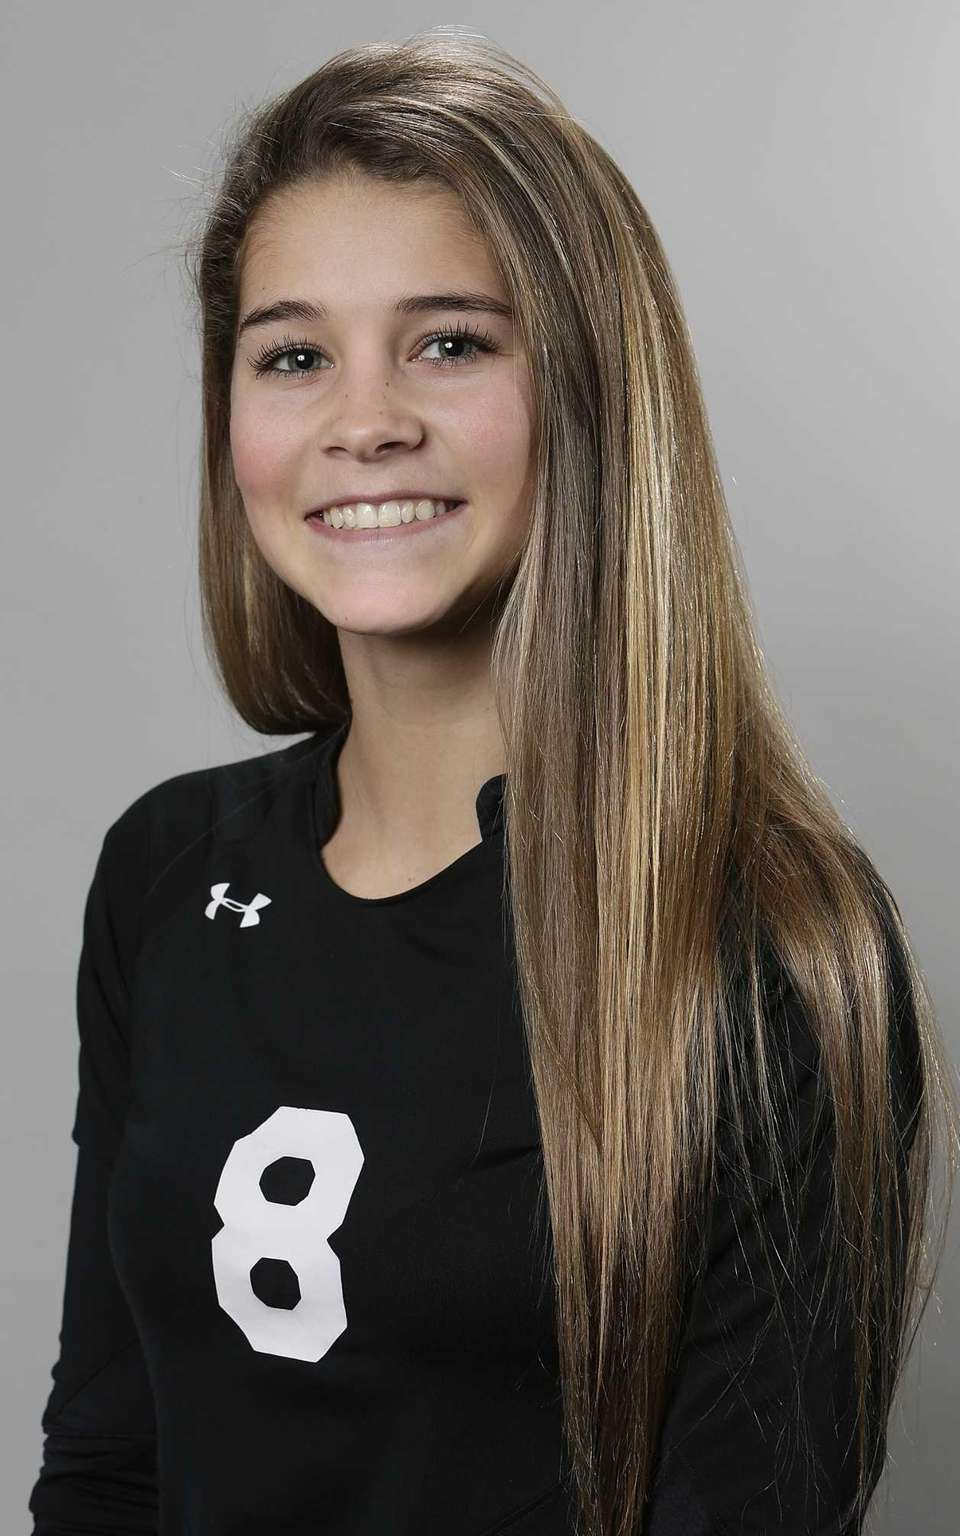 Mackenzie Cole made 450 digs and was the